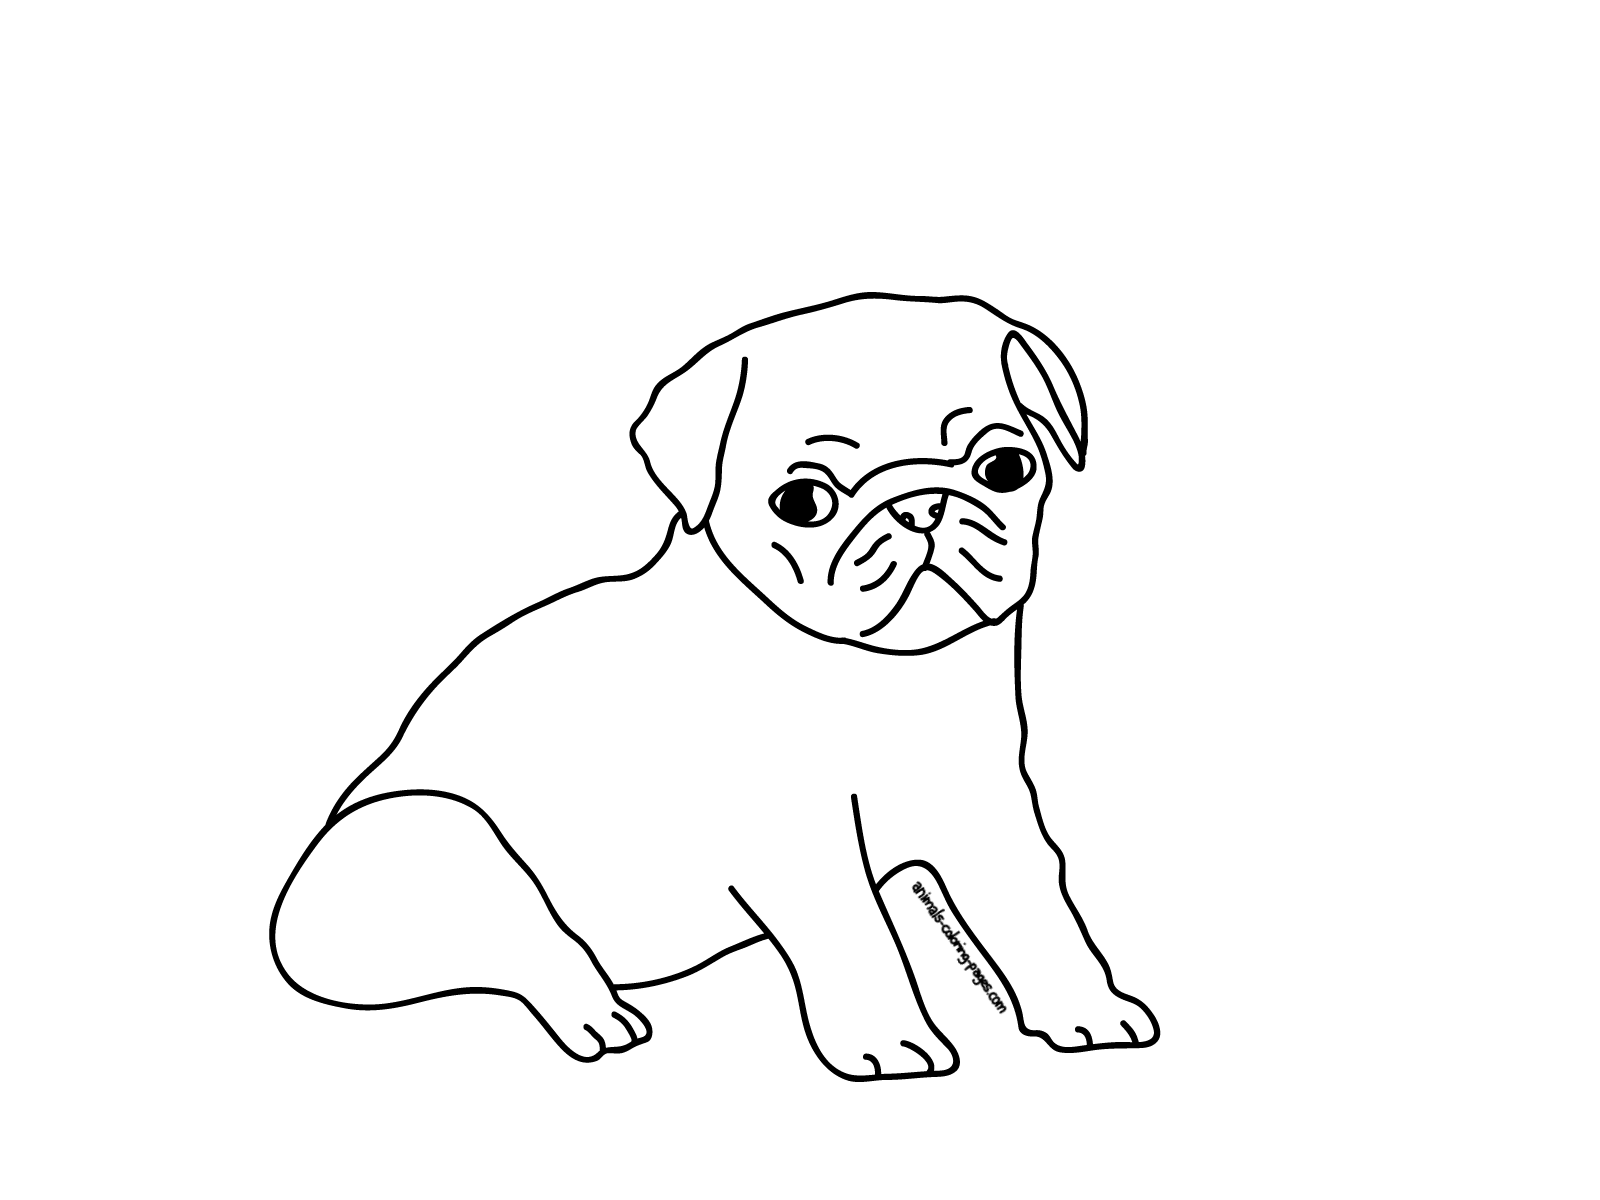 pug puppy coloring pages printable pug coloring pages coloring home puppy pages coloring pug